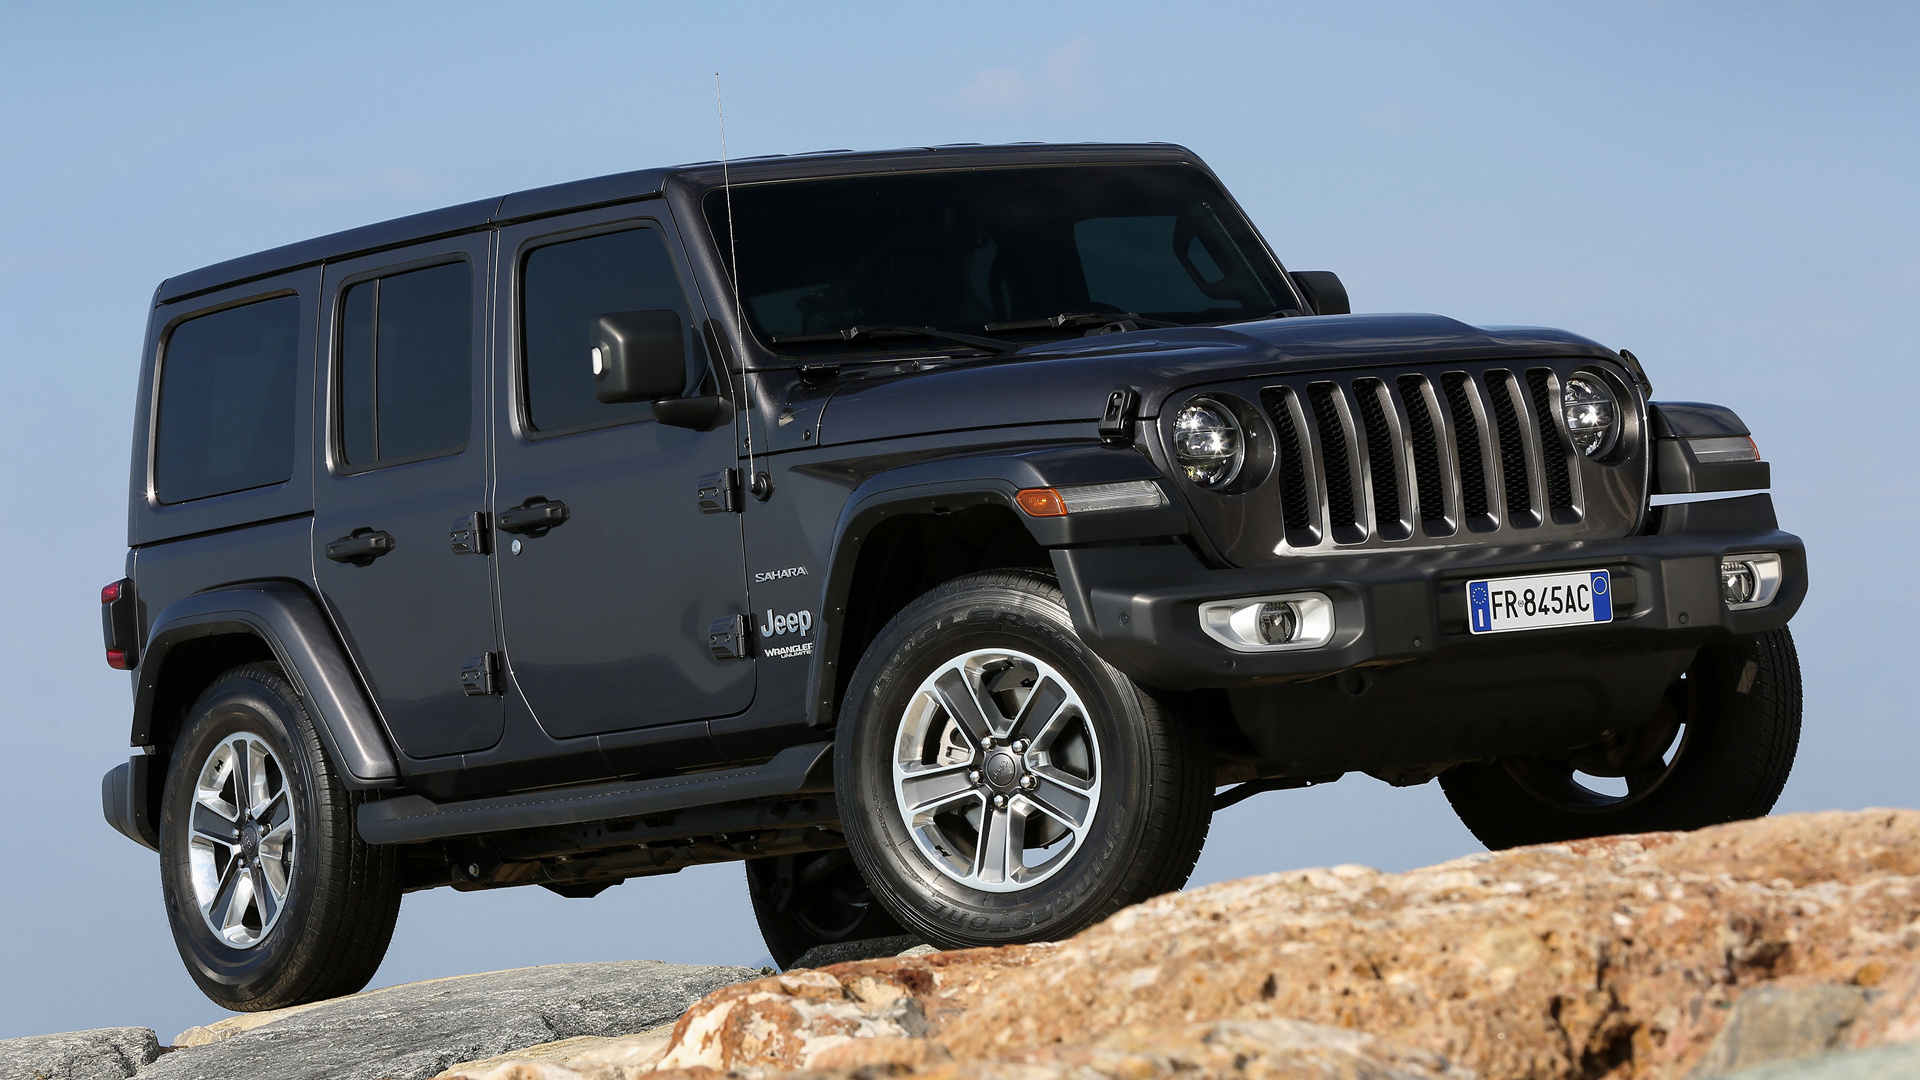 2018 Jeep Wrangler Unlimited Sahara (EU) - Wallpapers and ...